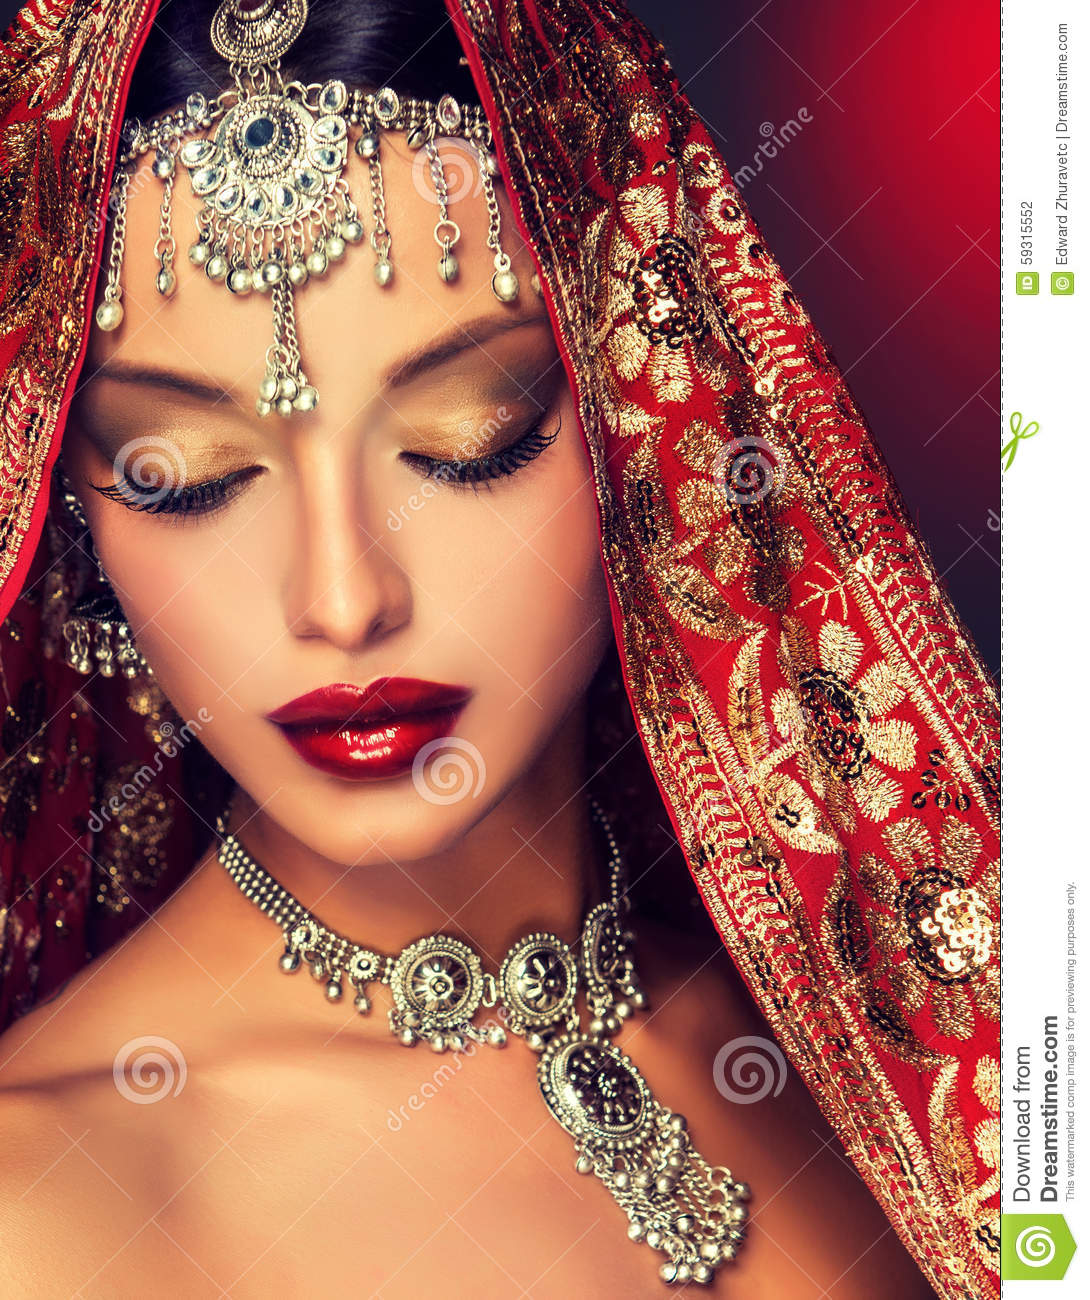 f01784872c Beautiful Indian woman portrait with jewelry. elegant Indian girl looking  to the side ,bollywood style.